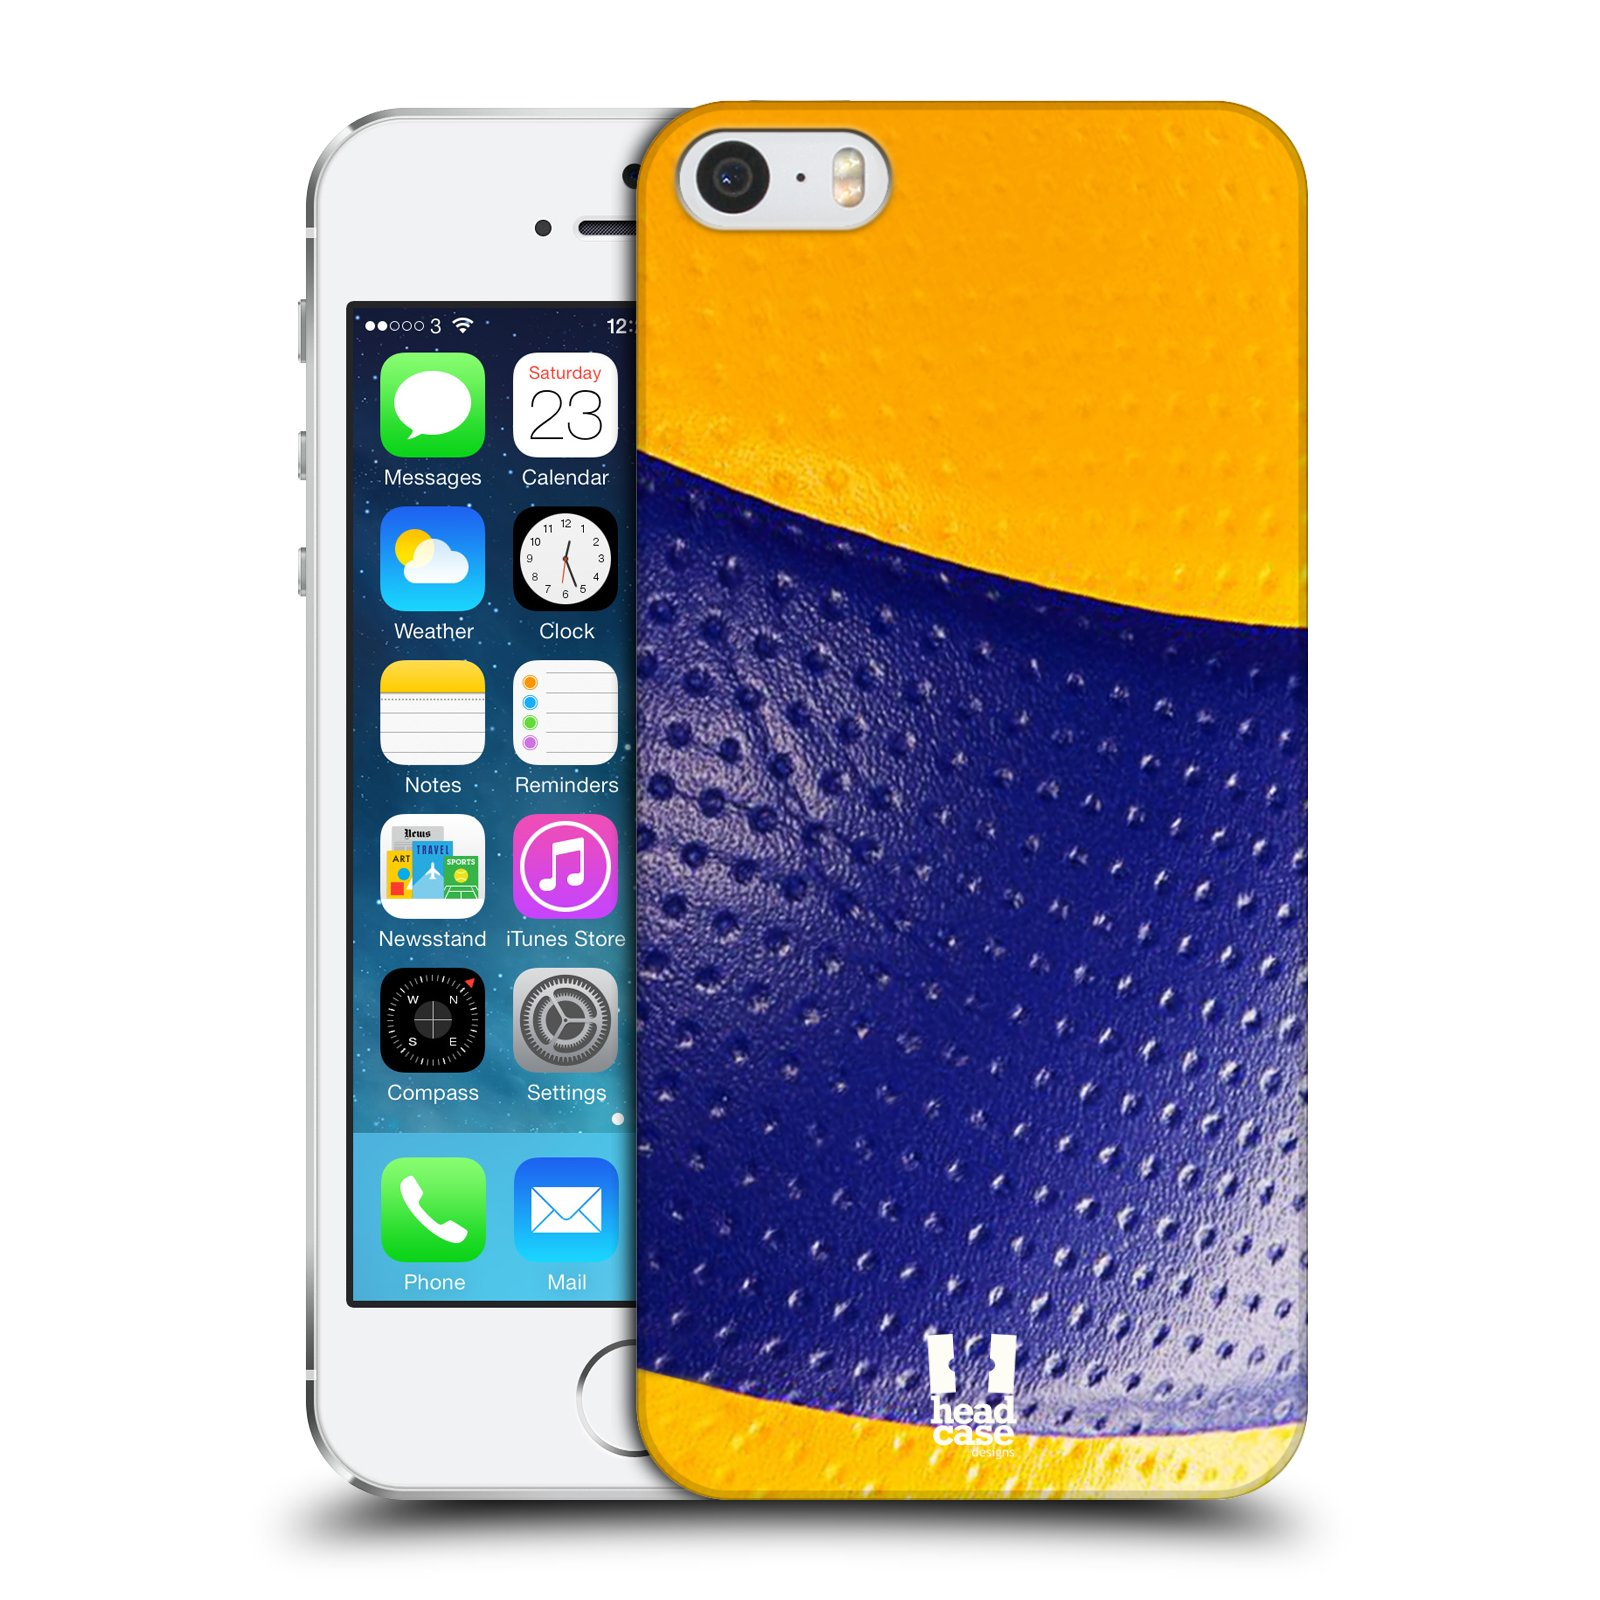 HEAD CASE DESIGNS BALL COLLECTION HARD BACK CASE FOR APPLE iPHONE 5S